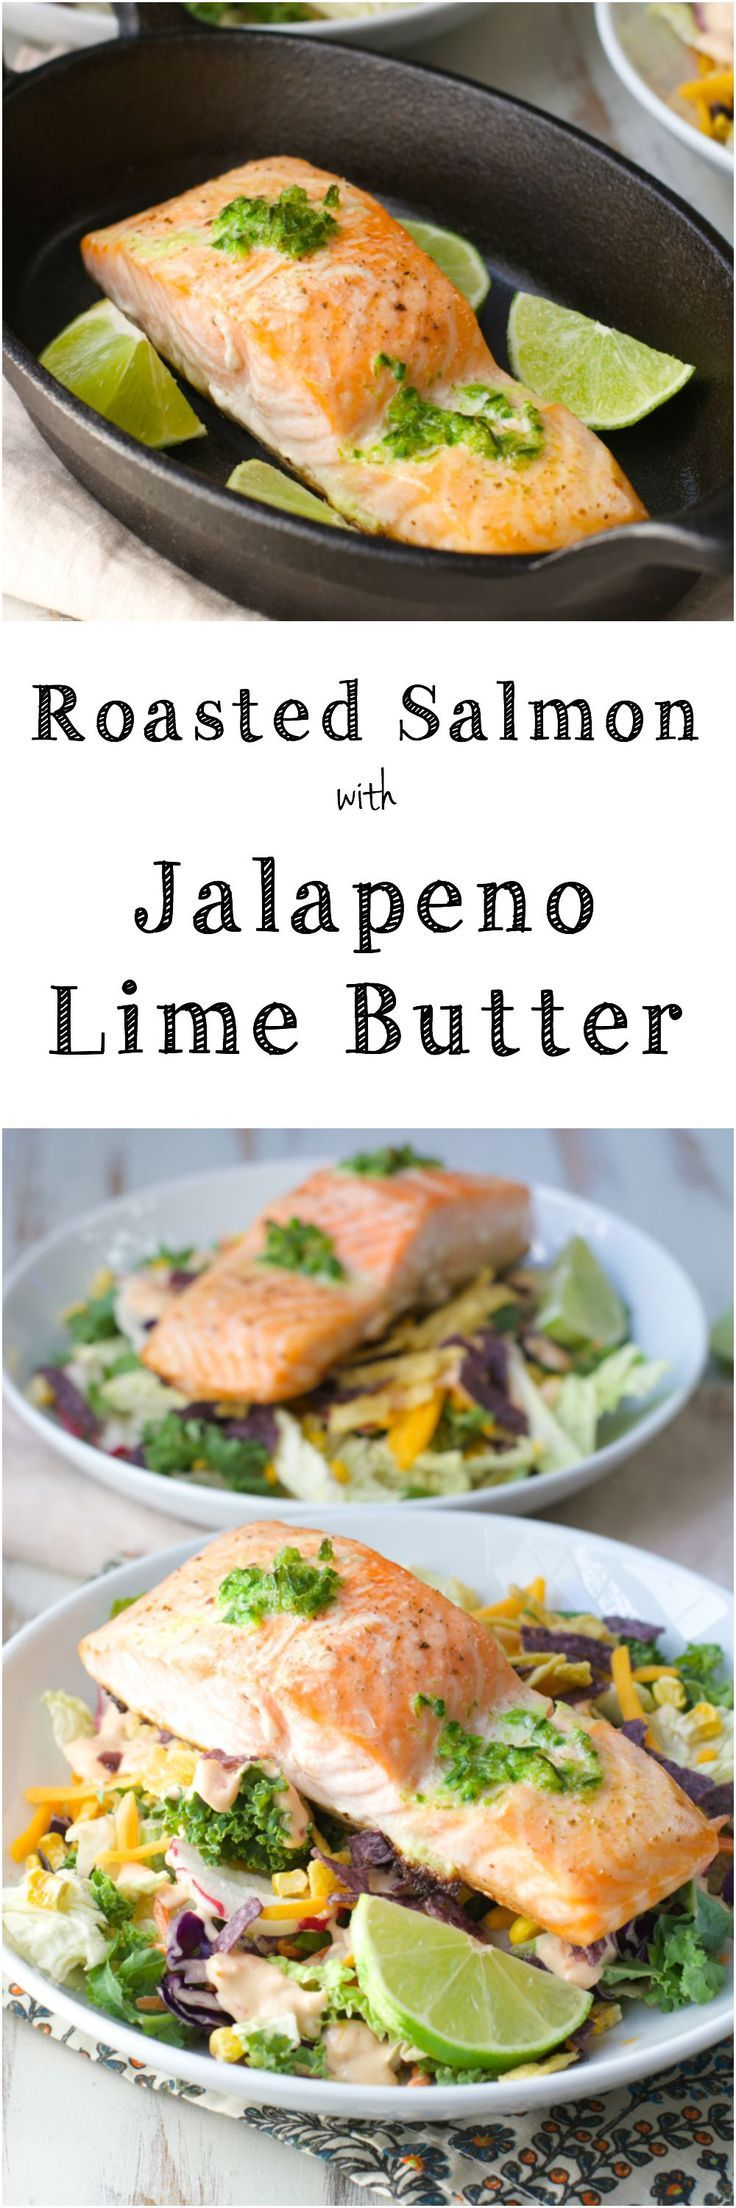 ... Lime Butter. It's so easy to make! | Butter, Roasted salmon and Salmon